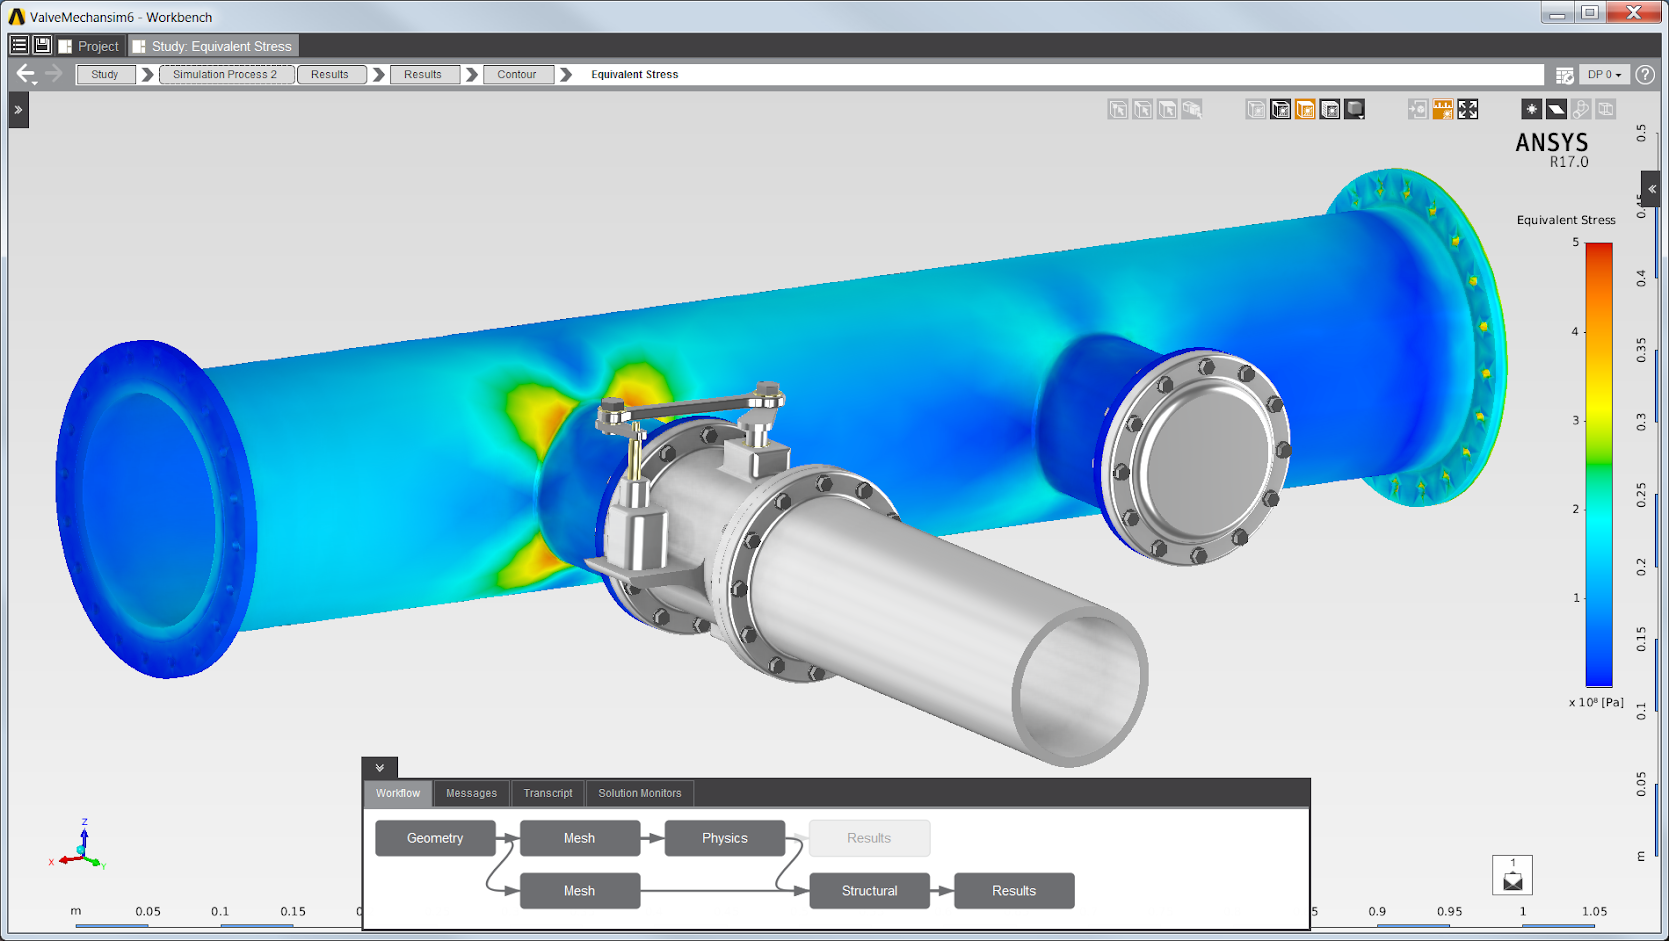 ANSYS AIM user interface engineering simulation software